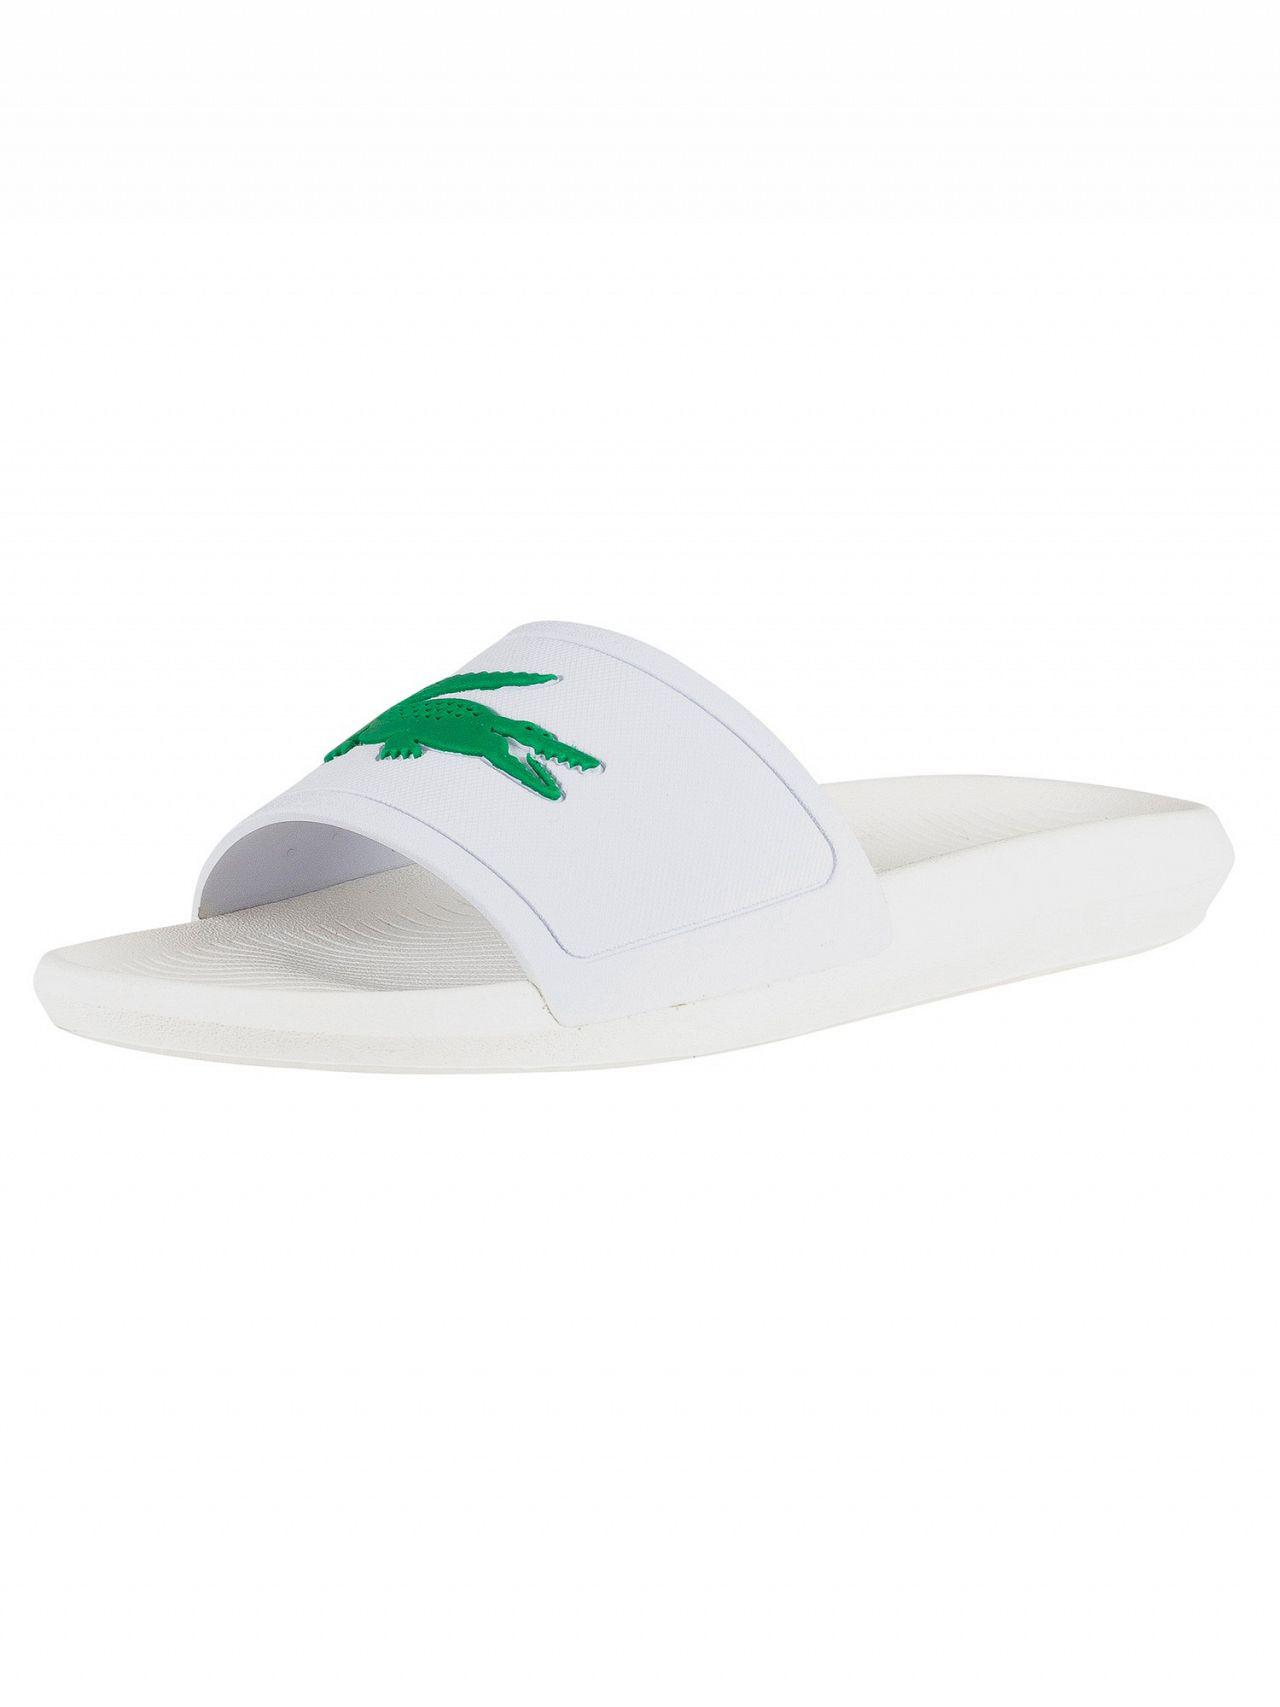 9cf97b28fe4d73 Lacoste Croco Slide 119 1 Sandals in White for Men - Save 8% - Lyst